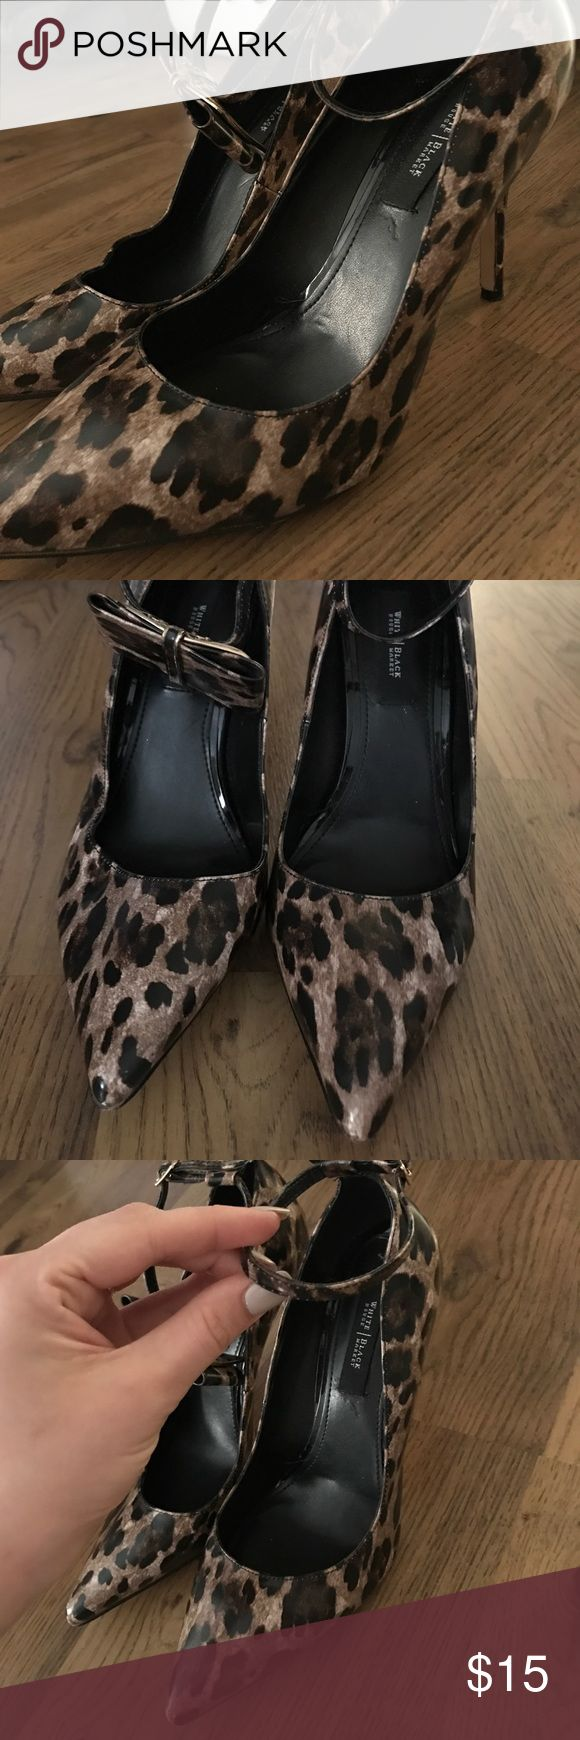 Cheetah Heels w Removable Ankle Bow Such fashion forward pointed toe heels with a fabulous cheetah print and an ankle strap with a bow that be clipped on or off depending on styling.. super cute w the bow clipped on the front. only worn once, perfect condition!                                                                       ⭐️5 STAR Posher⭐️Same Day Shipping Before 3PM⭐️Custom Thank You Card⭐️Open to Trades&Negotiations⭐️Proud to Provide Excellent Customer Service⭐️ White House Black…